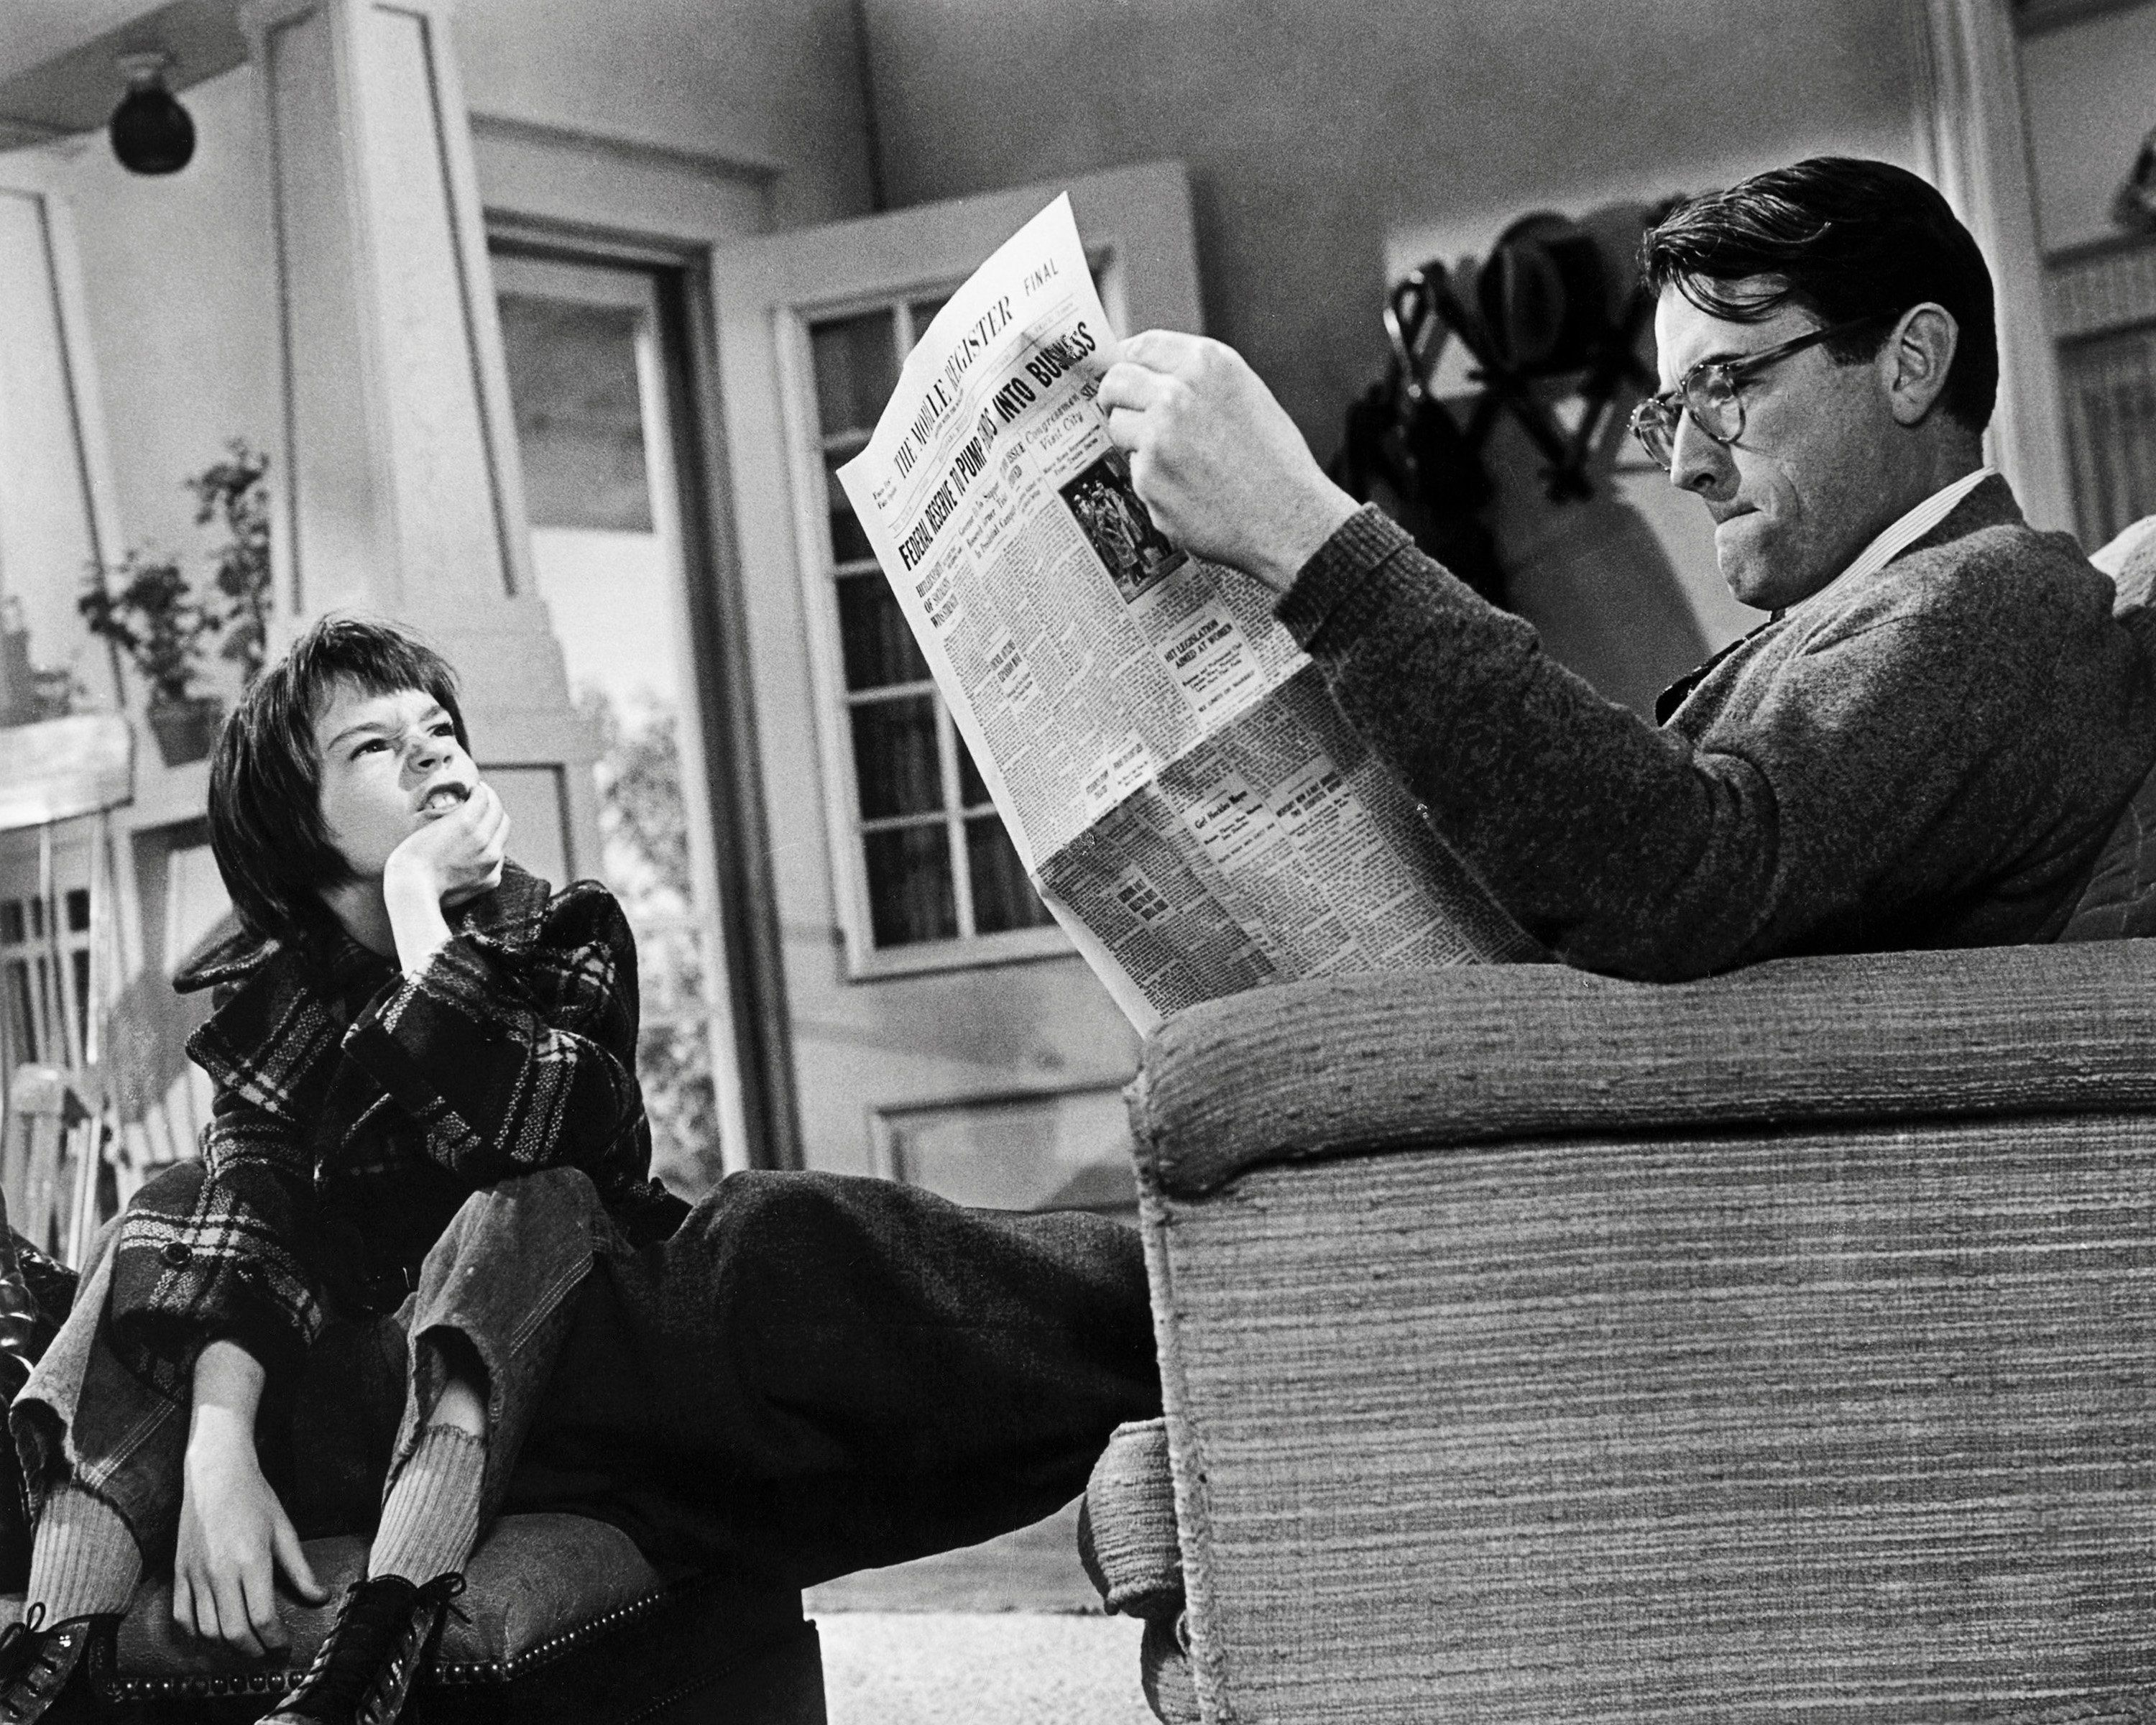 American actors Gregory Peck (1916 - 2003), as Atticus Finch, and Mary Badham as Scout, in 'To Kill A Mockingbird', directed by Robert Mulligan, 1962. (Photo by Silver Screen Collection/Getty Images)